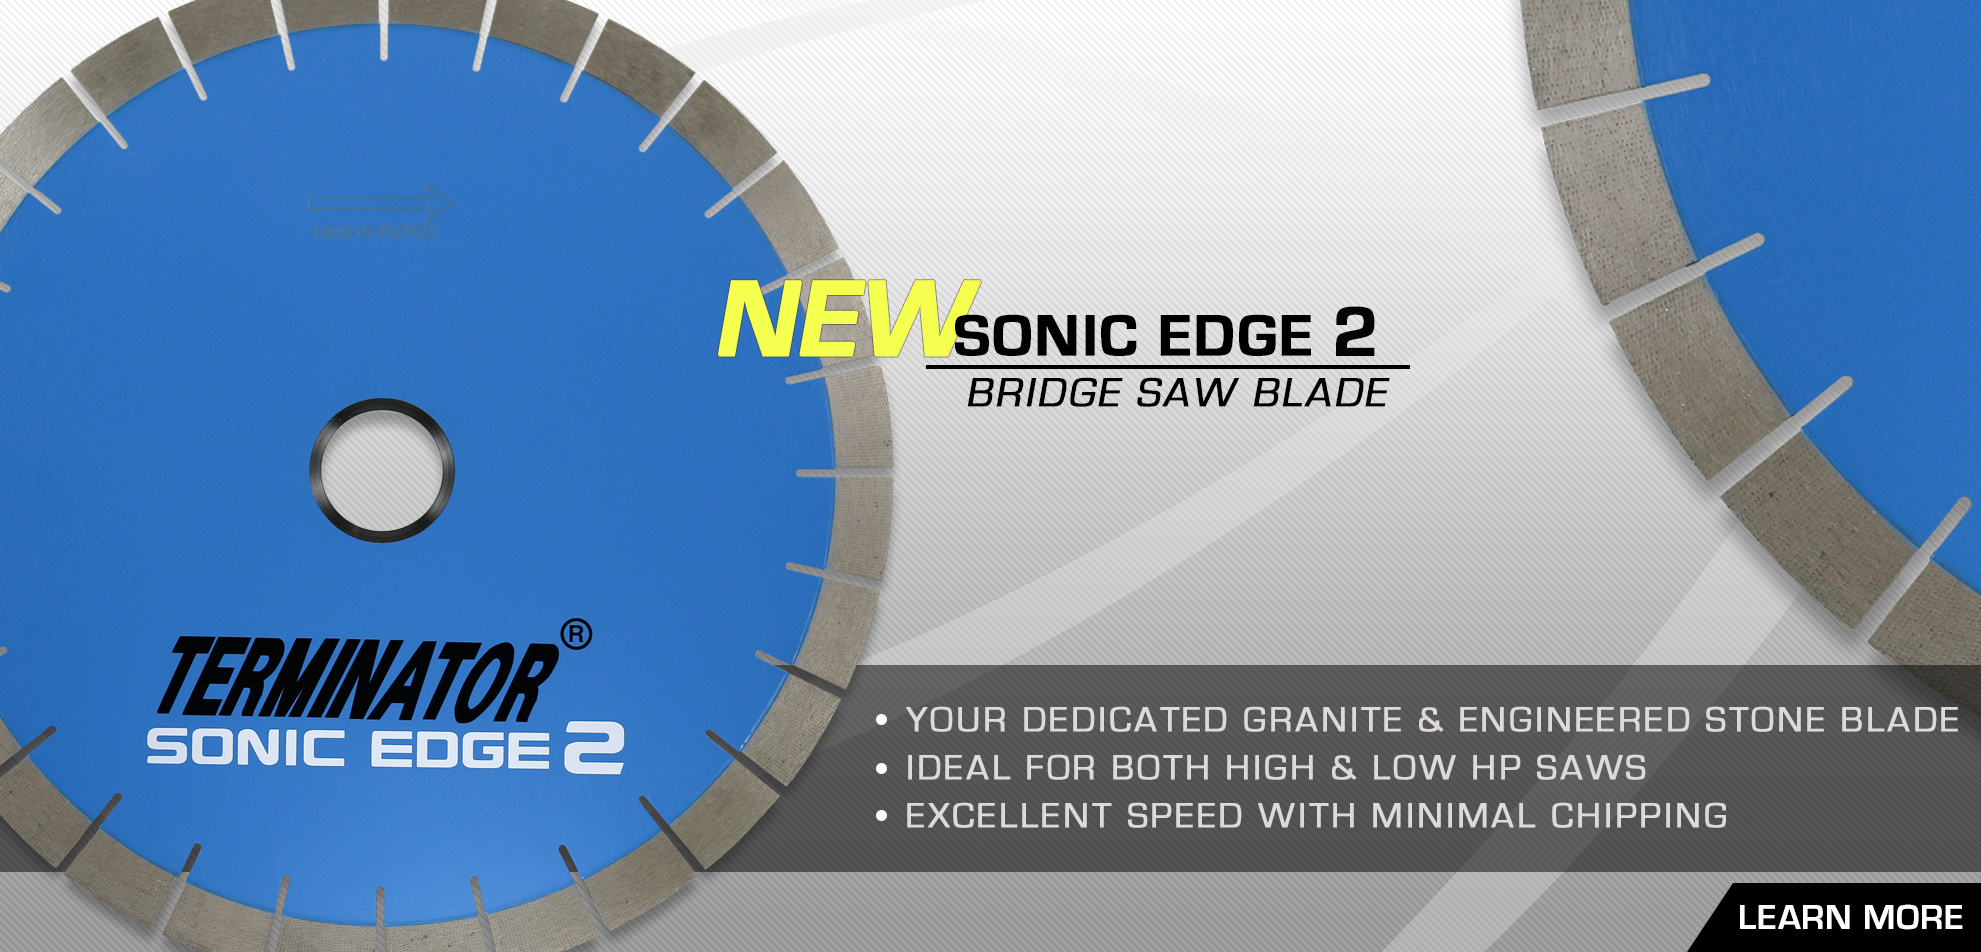 Sonic Edge 2 Bridge Saw Blade